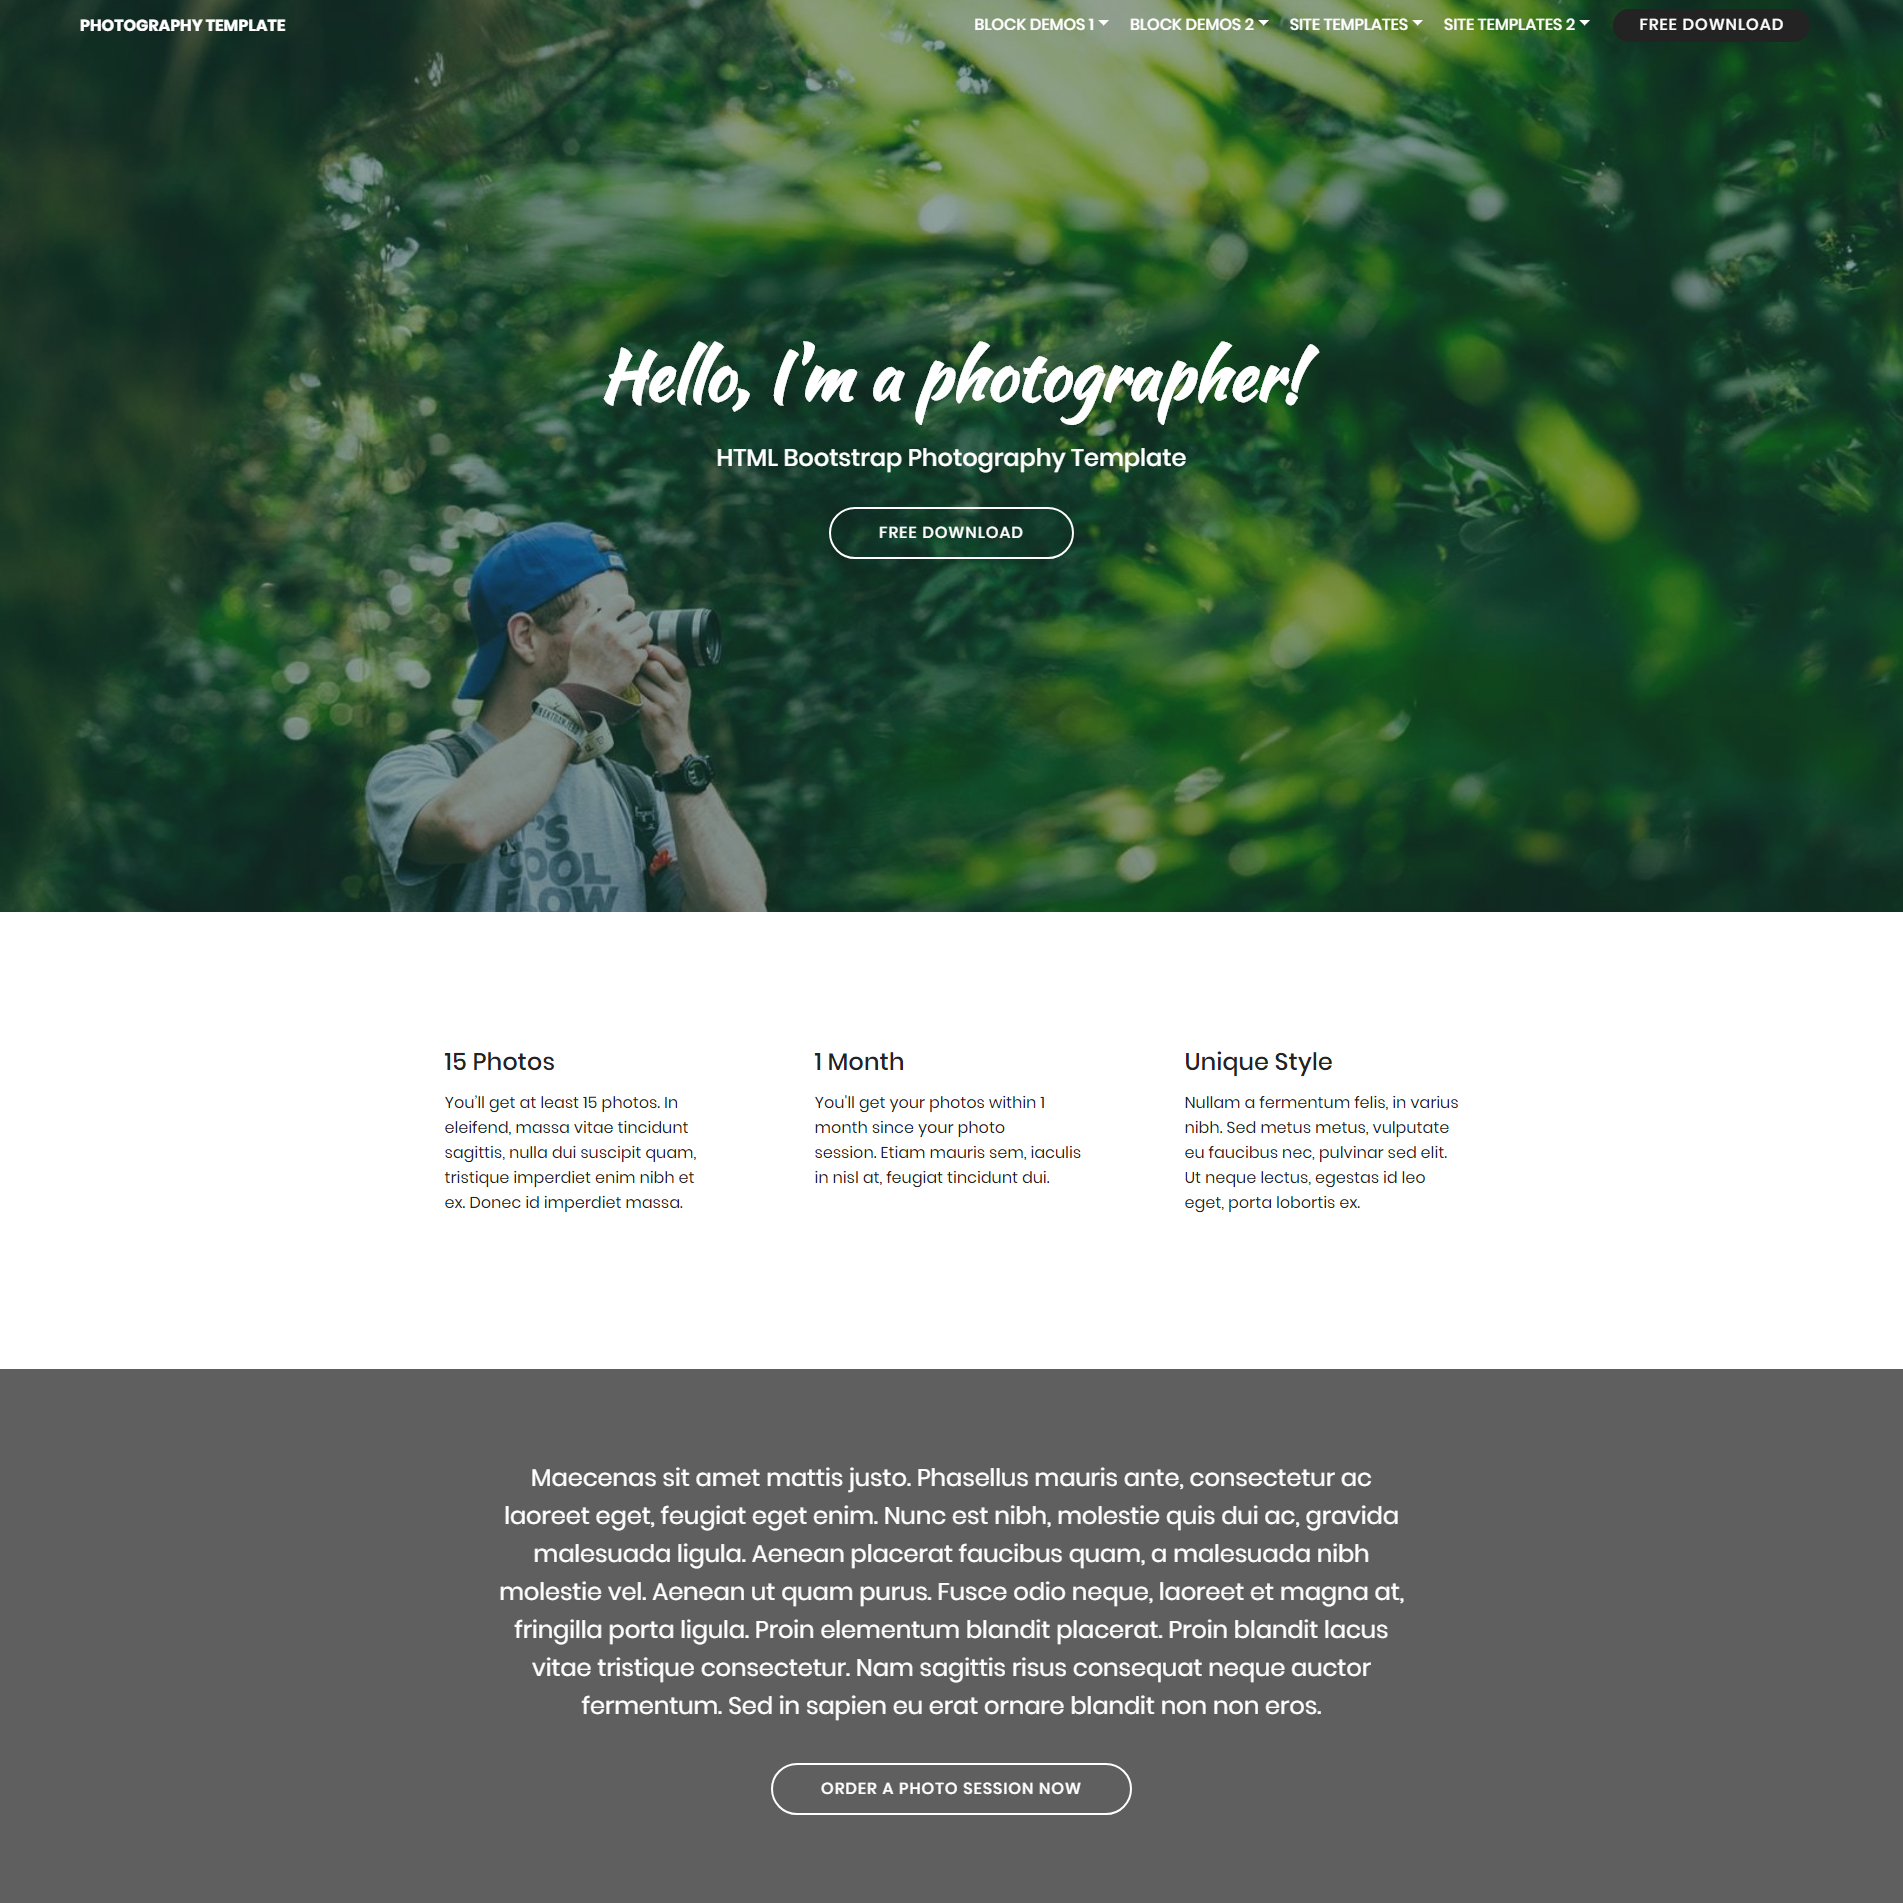 CSS3 Bootstrap Photography Templates